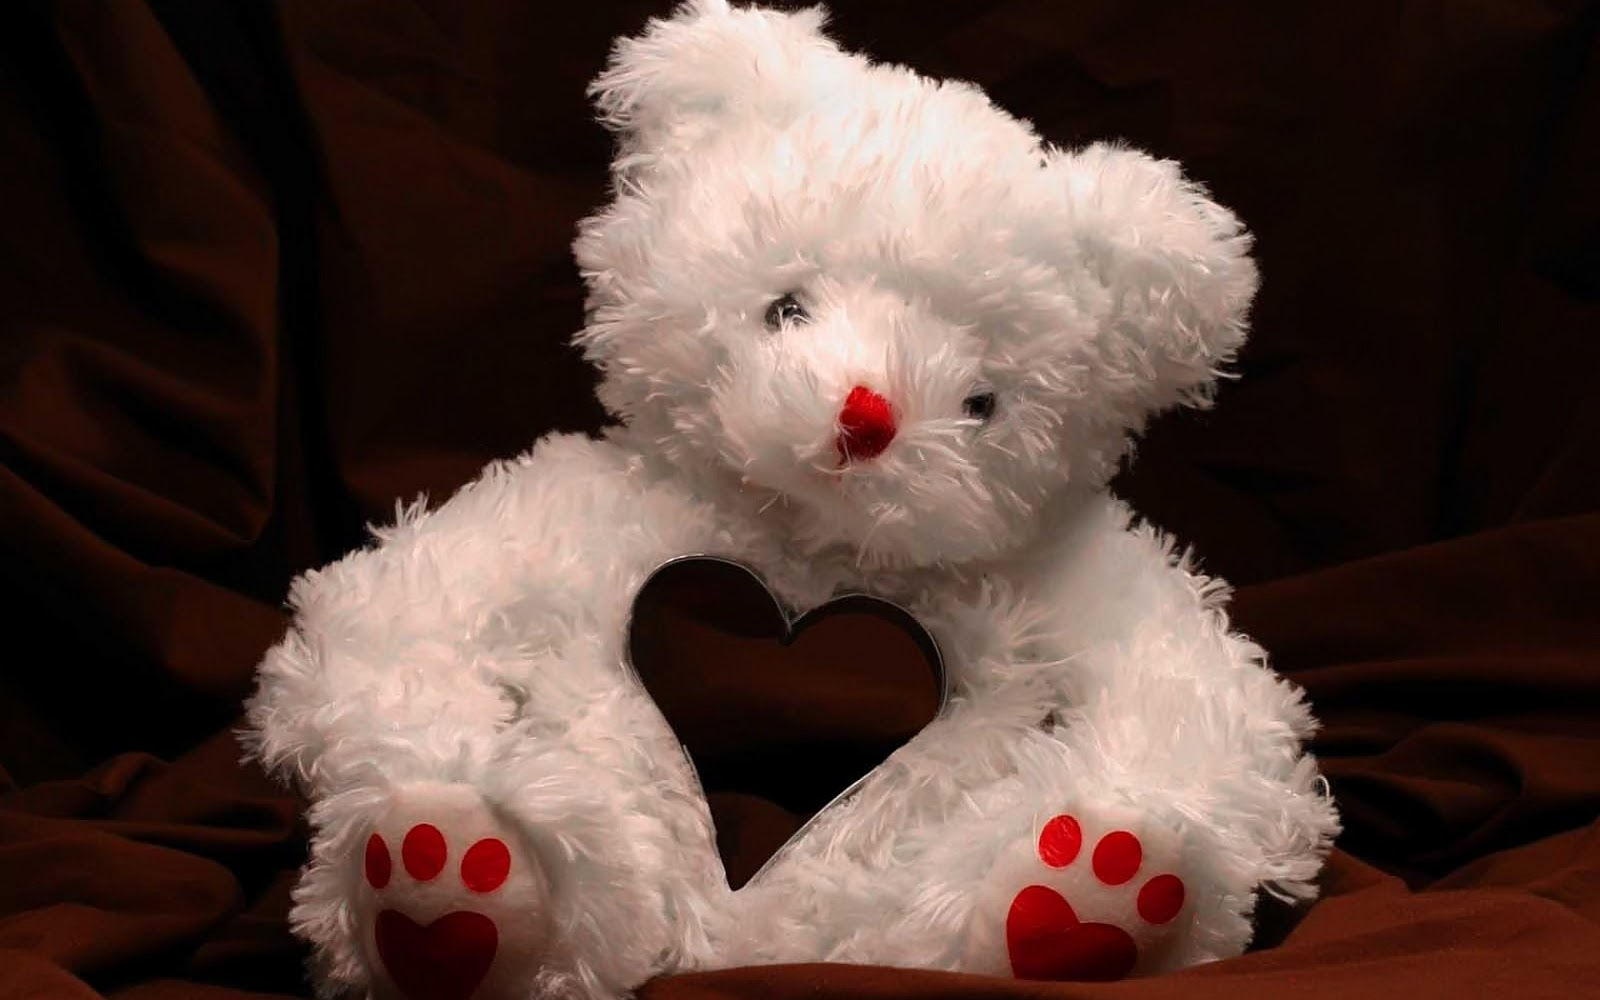 Teddy Bear HD Wallpapers 2013-2014